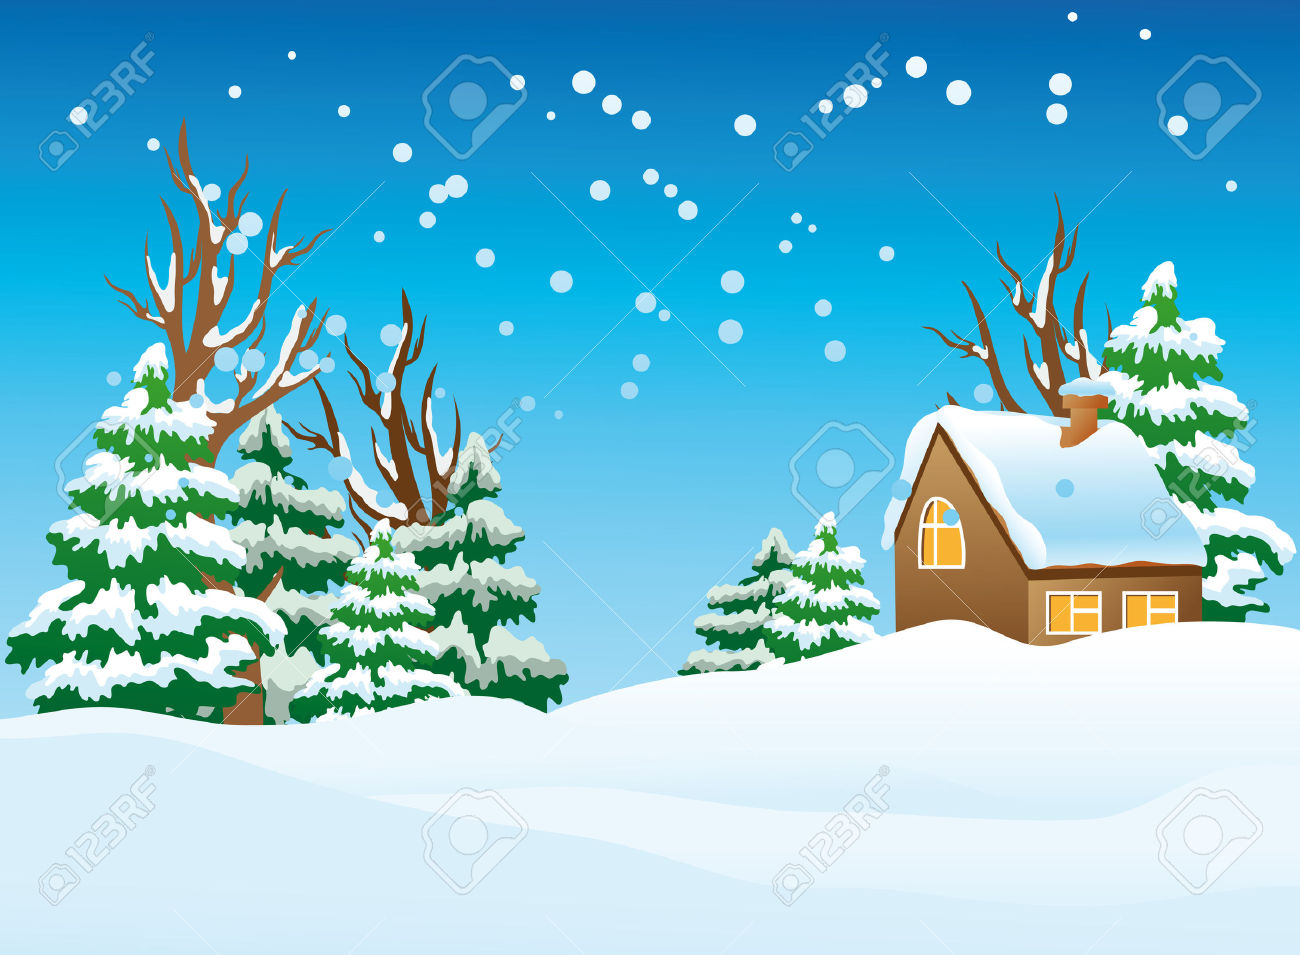 Snow winter clipart banner library download Free Snow Winter Cliparts, Download Free Clip Art, Free Clip ... banner library download